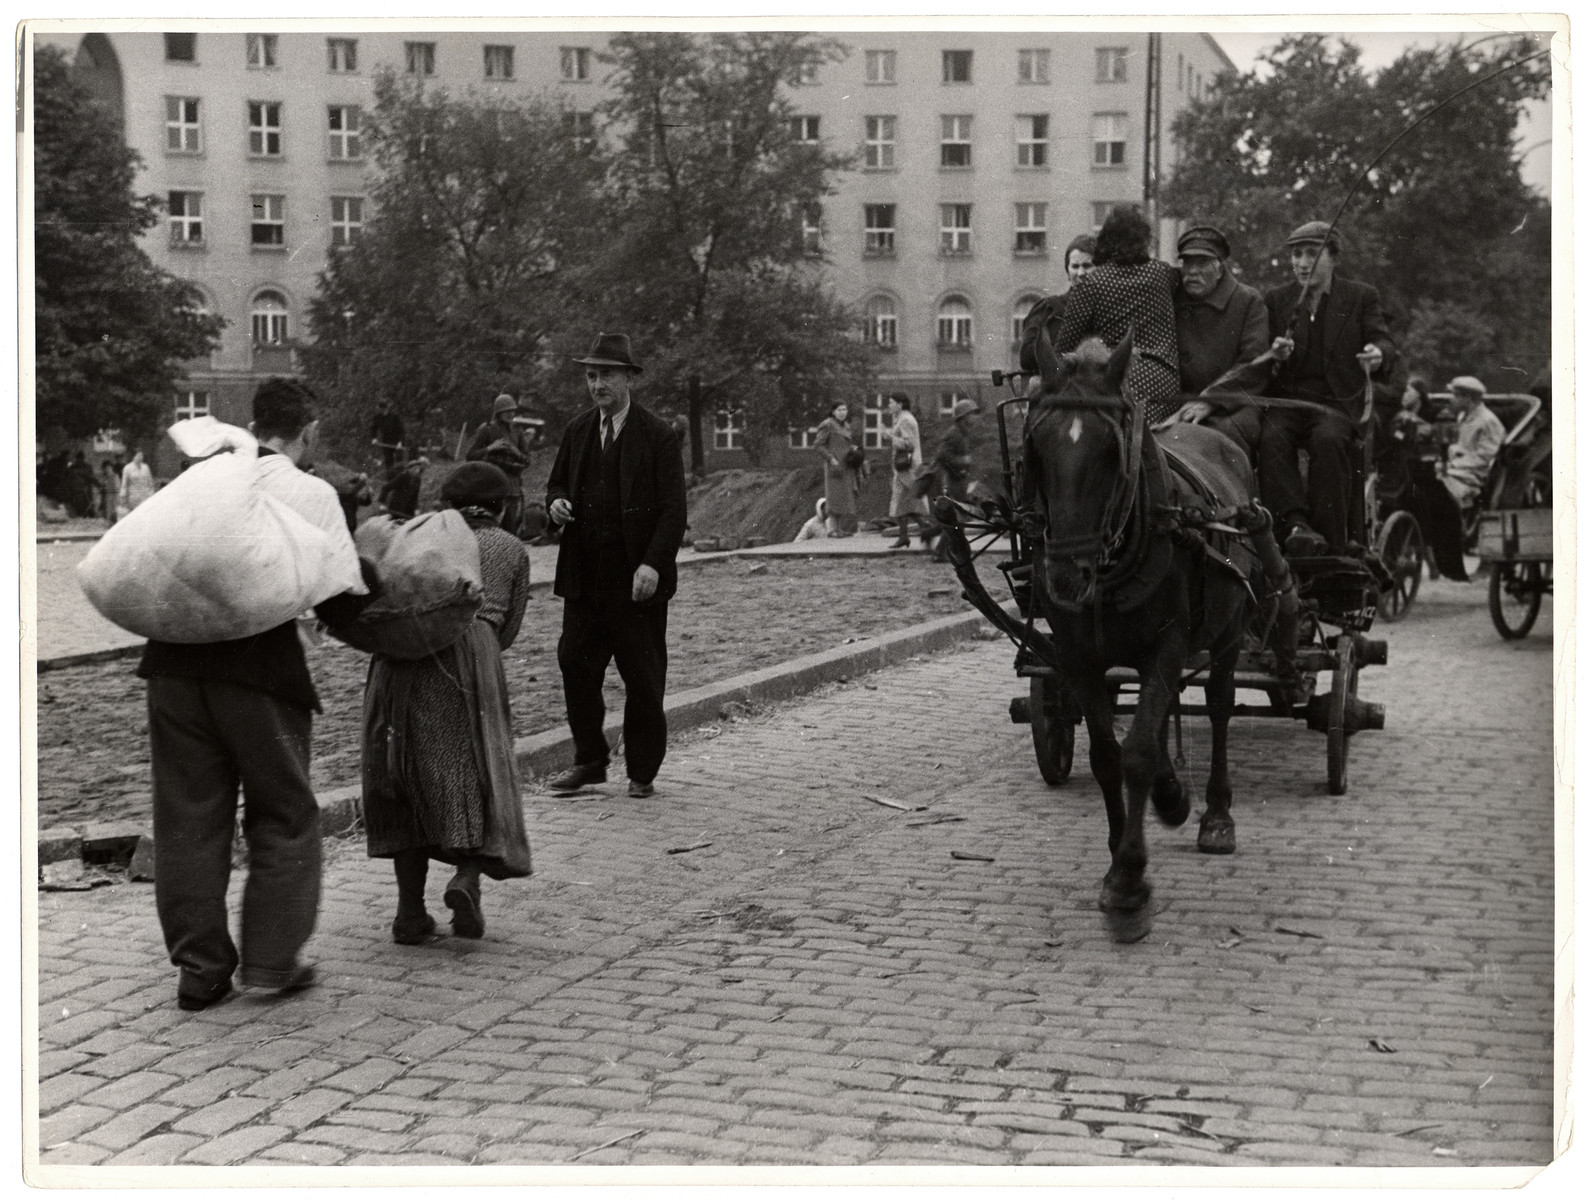 Polish civilians carry bundles and travel in horse-drawn carriages during the siege of Warsaw.